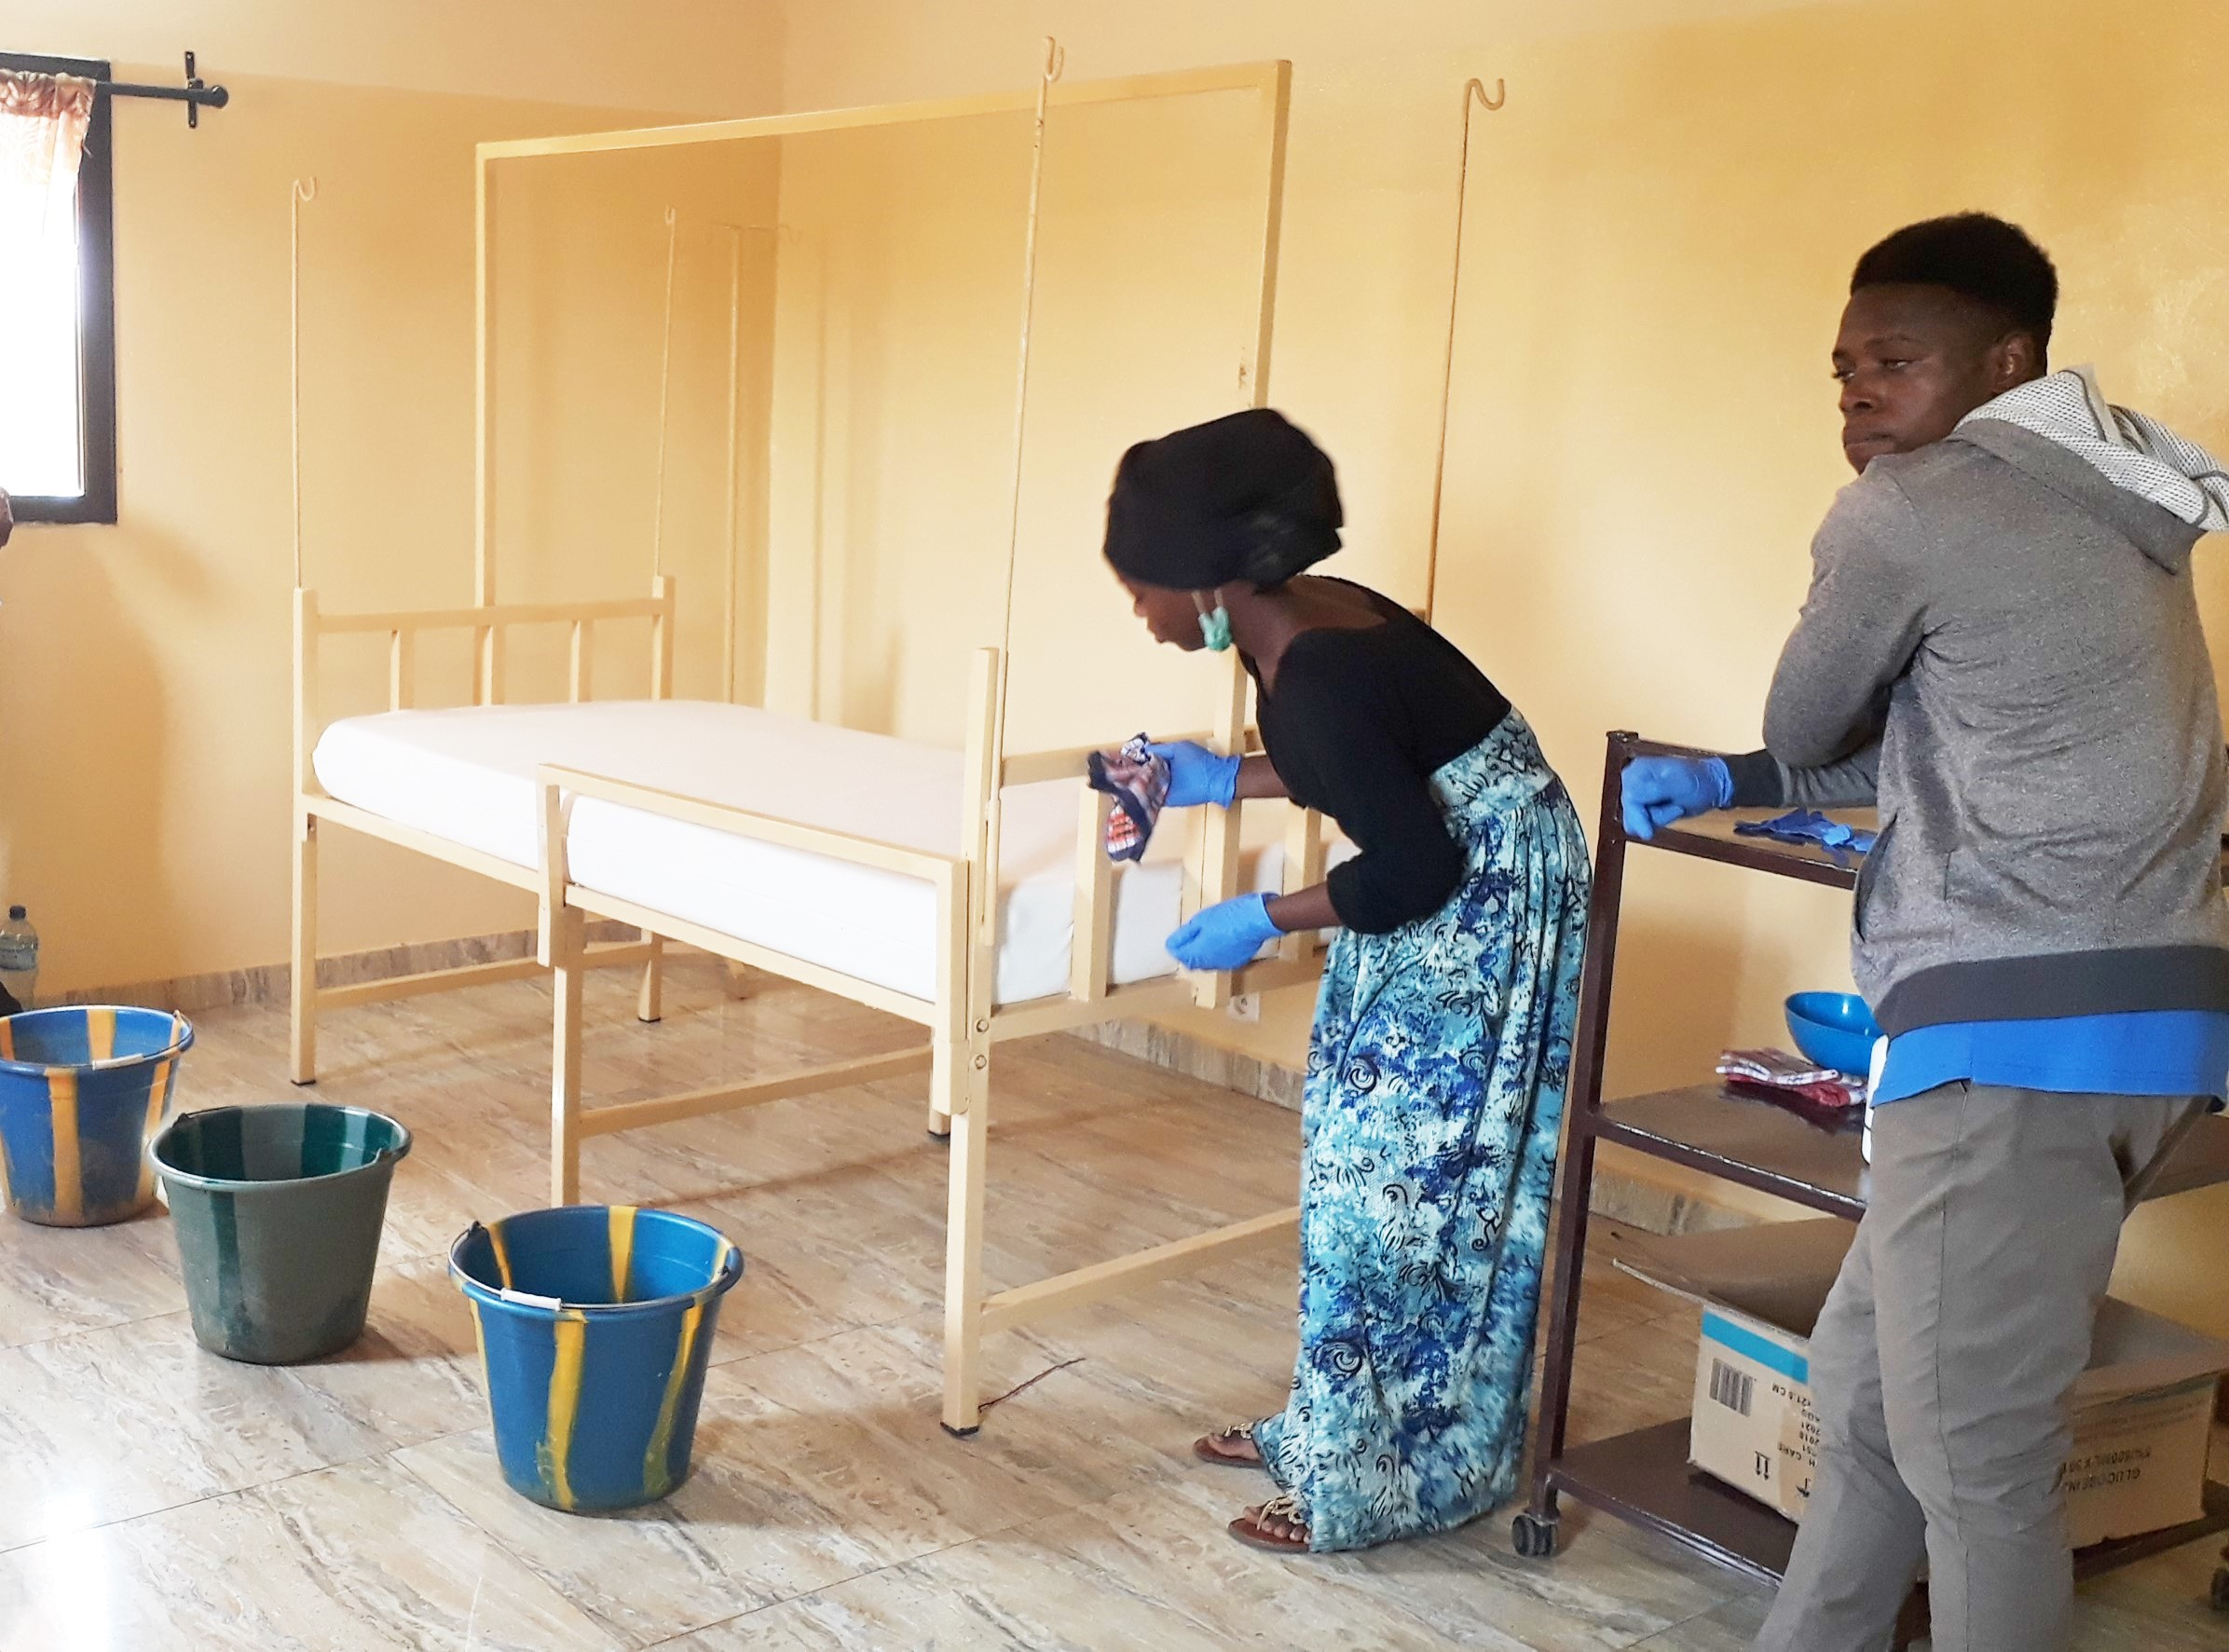 Bed disinfection is one of many practical skills nursing students have to practice before continuing their training in hospitals and clinics.